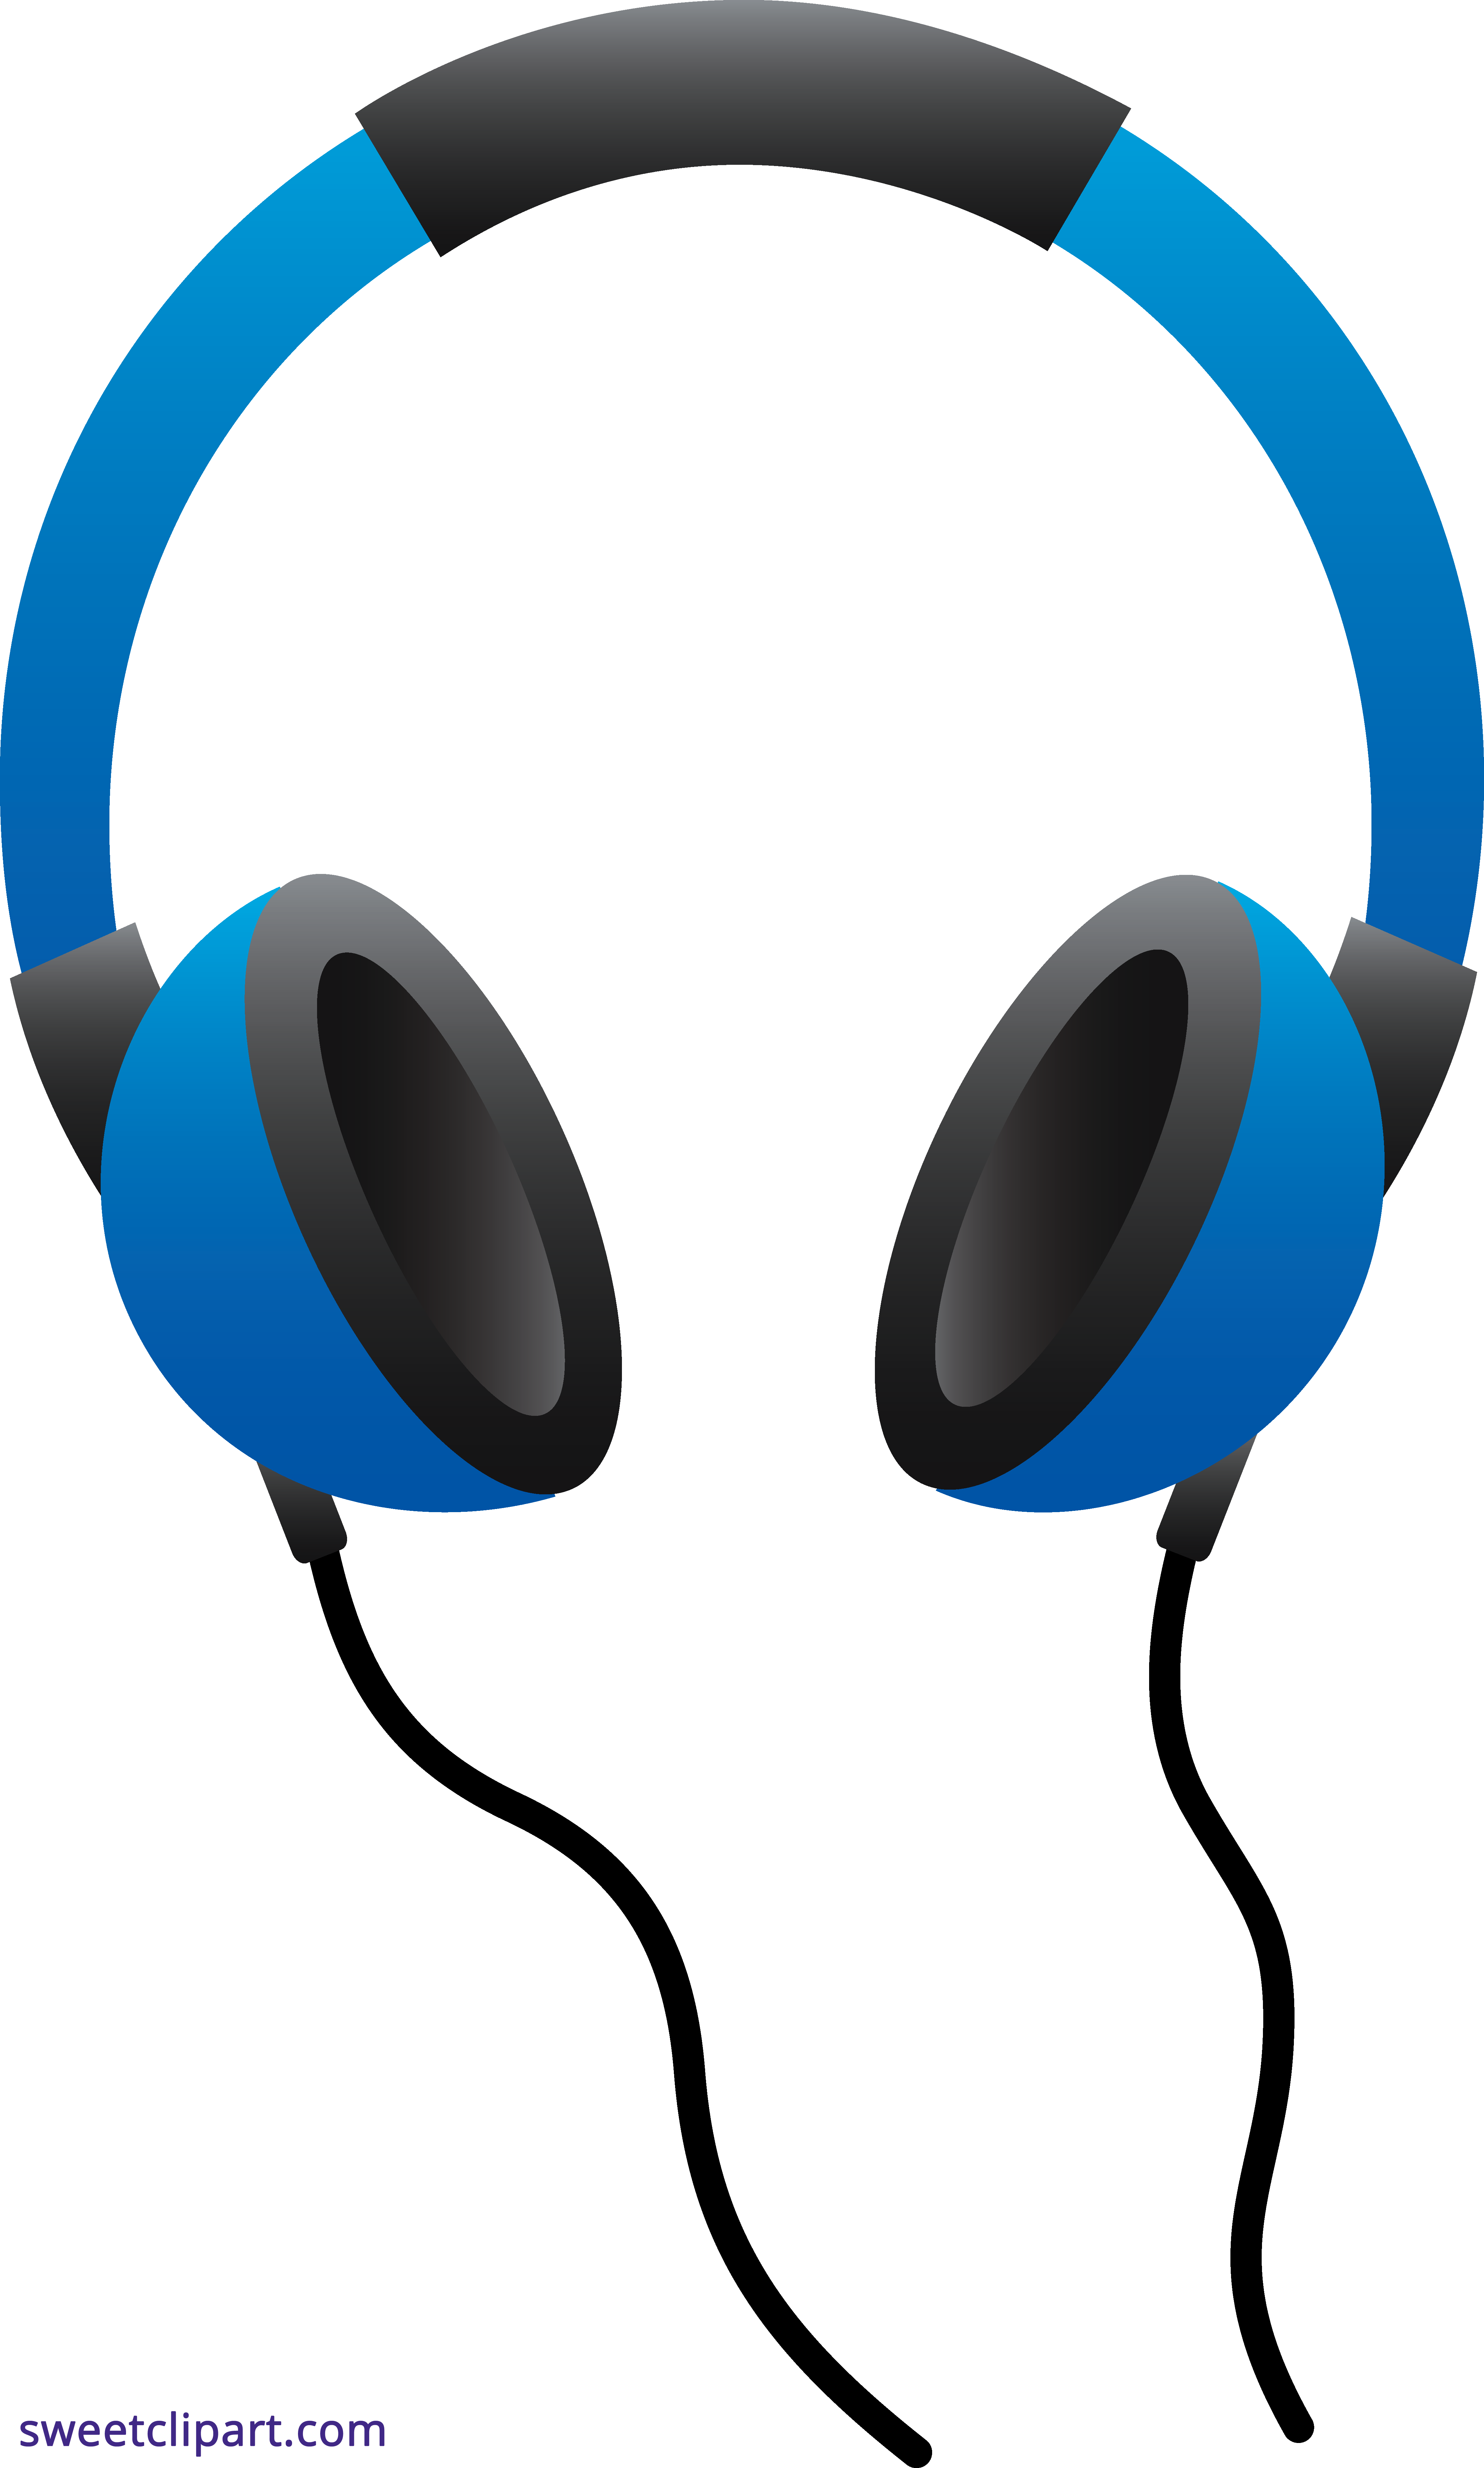 png library stock Headphones clipart. Blue sweet clip art